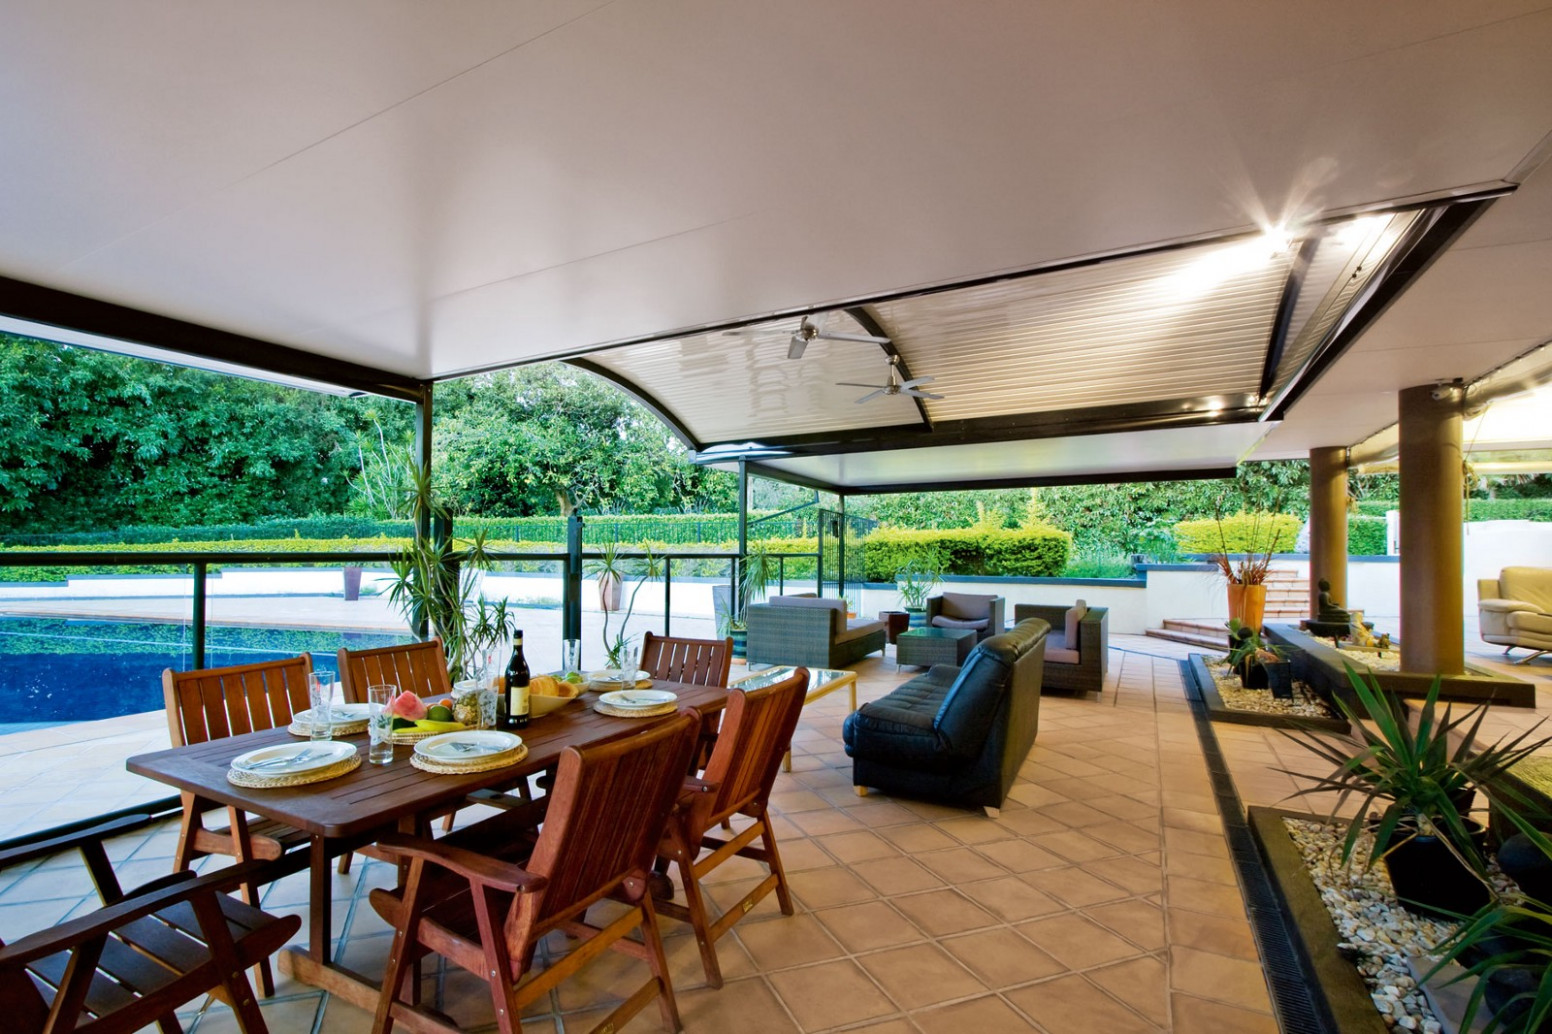 Carport Best Designs That You Can Get At The Cheapest Price Carport Landscape Design